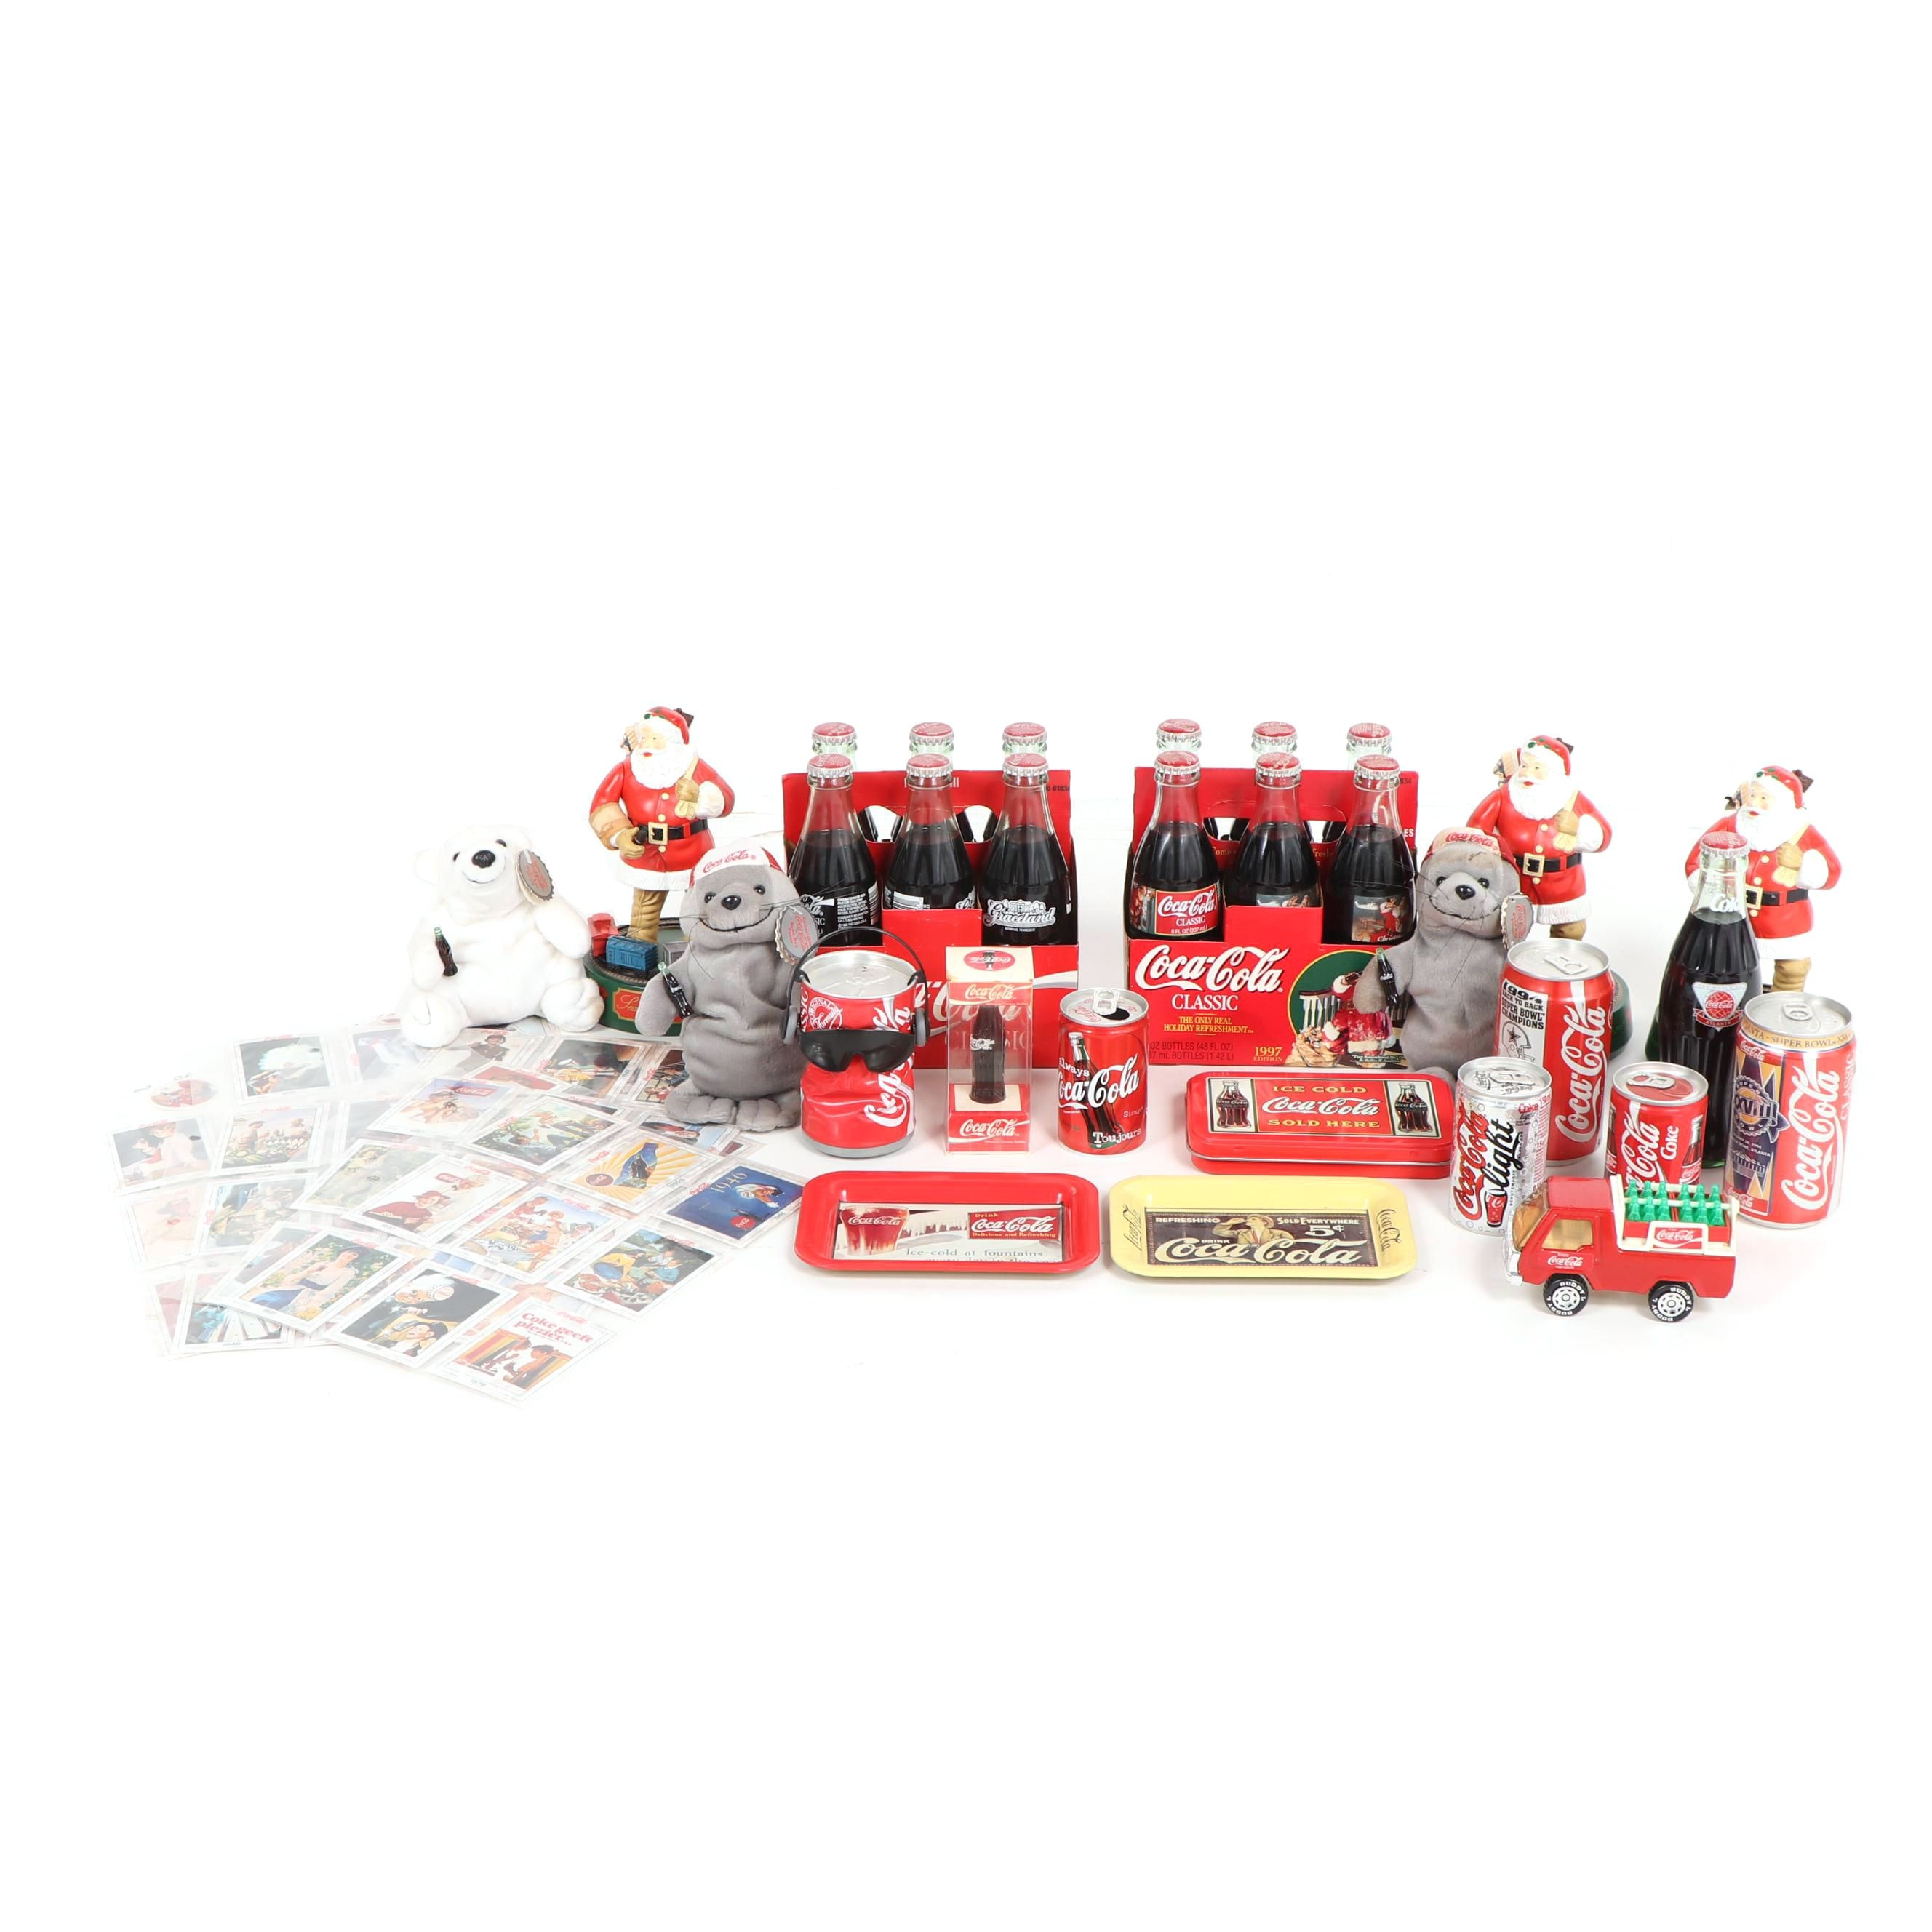 Coca-Cola Bottles, Cans, Figurines and Other Memorabilia